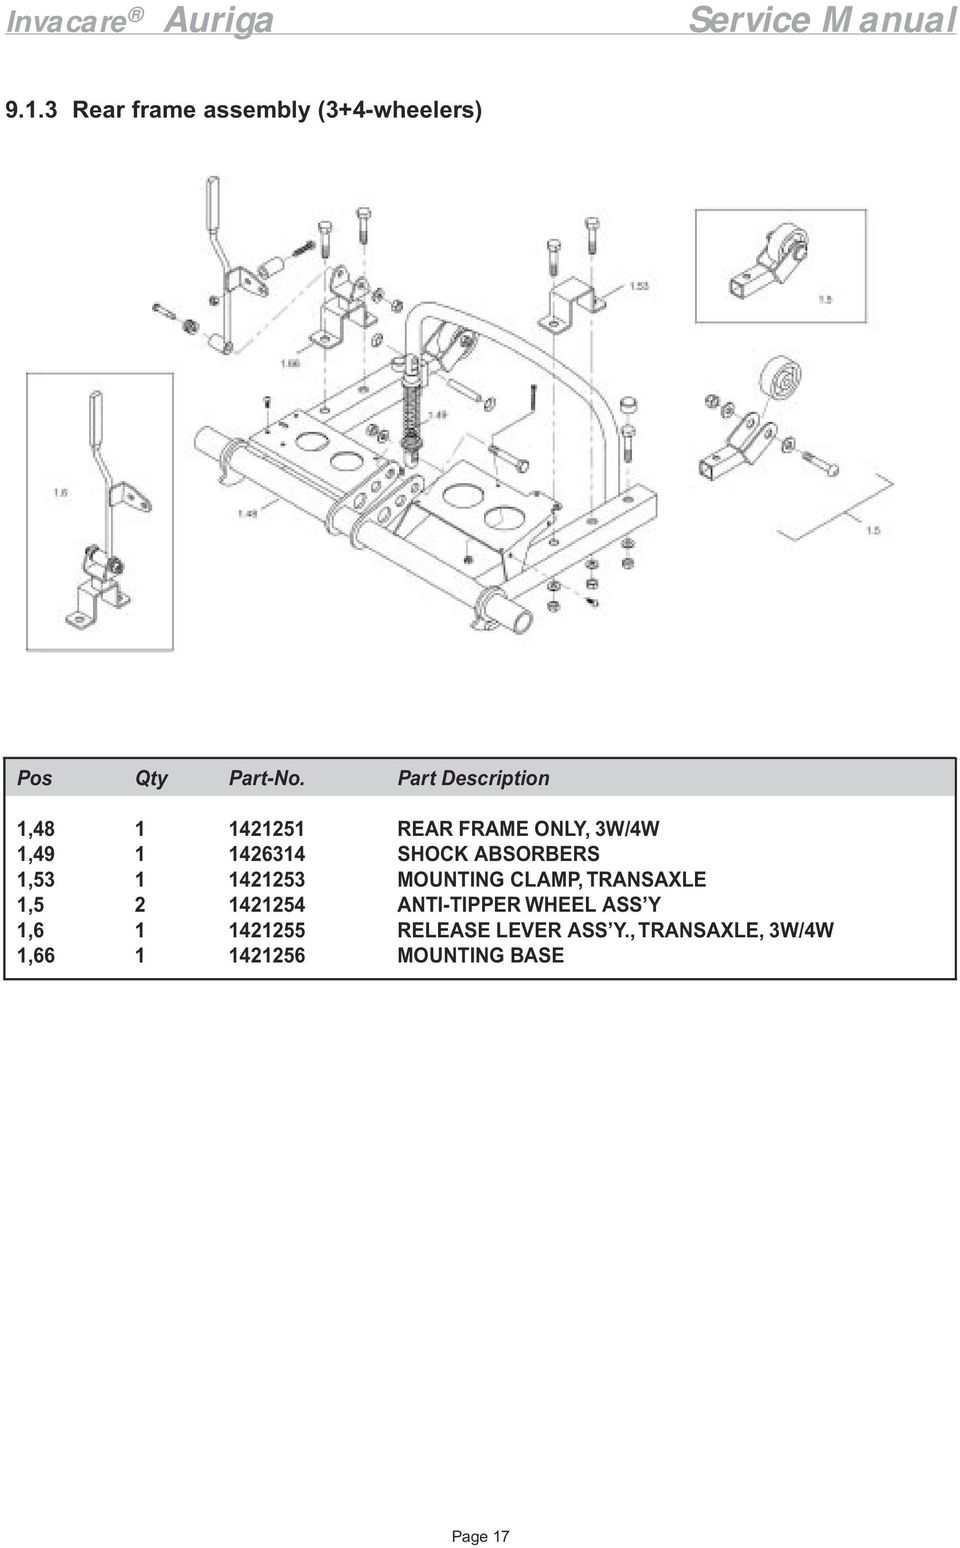 Invacare Auriga Service Manual 6 10 Km H Version Pdf 2008 C350 Fuse Box Frame Only 3w 4w Shock Absorbers Mounting Clamp Transaxle